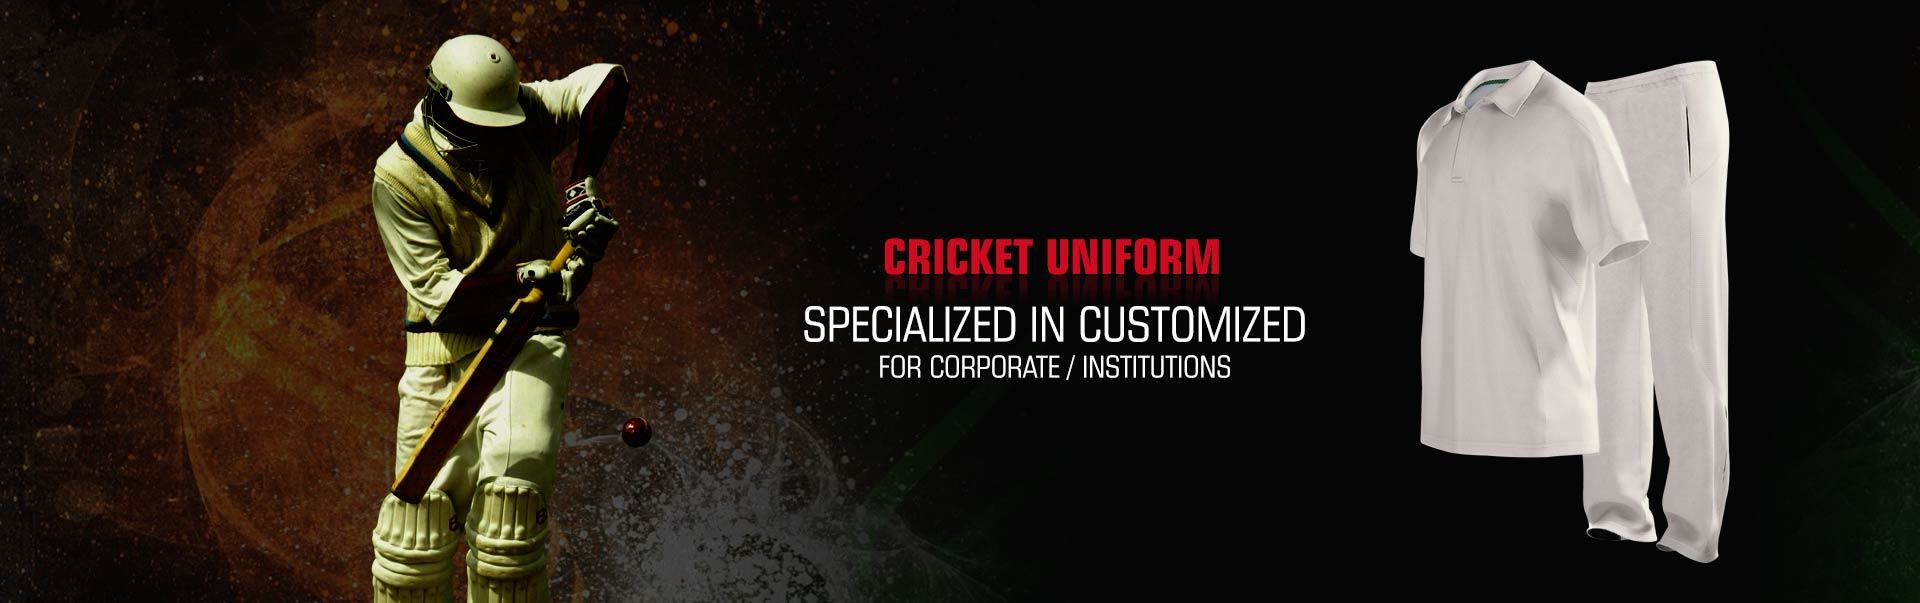 Cricket Uniform Wholesaler, Suppliers in Senneterre